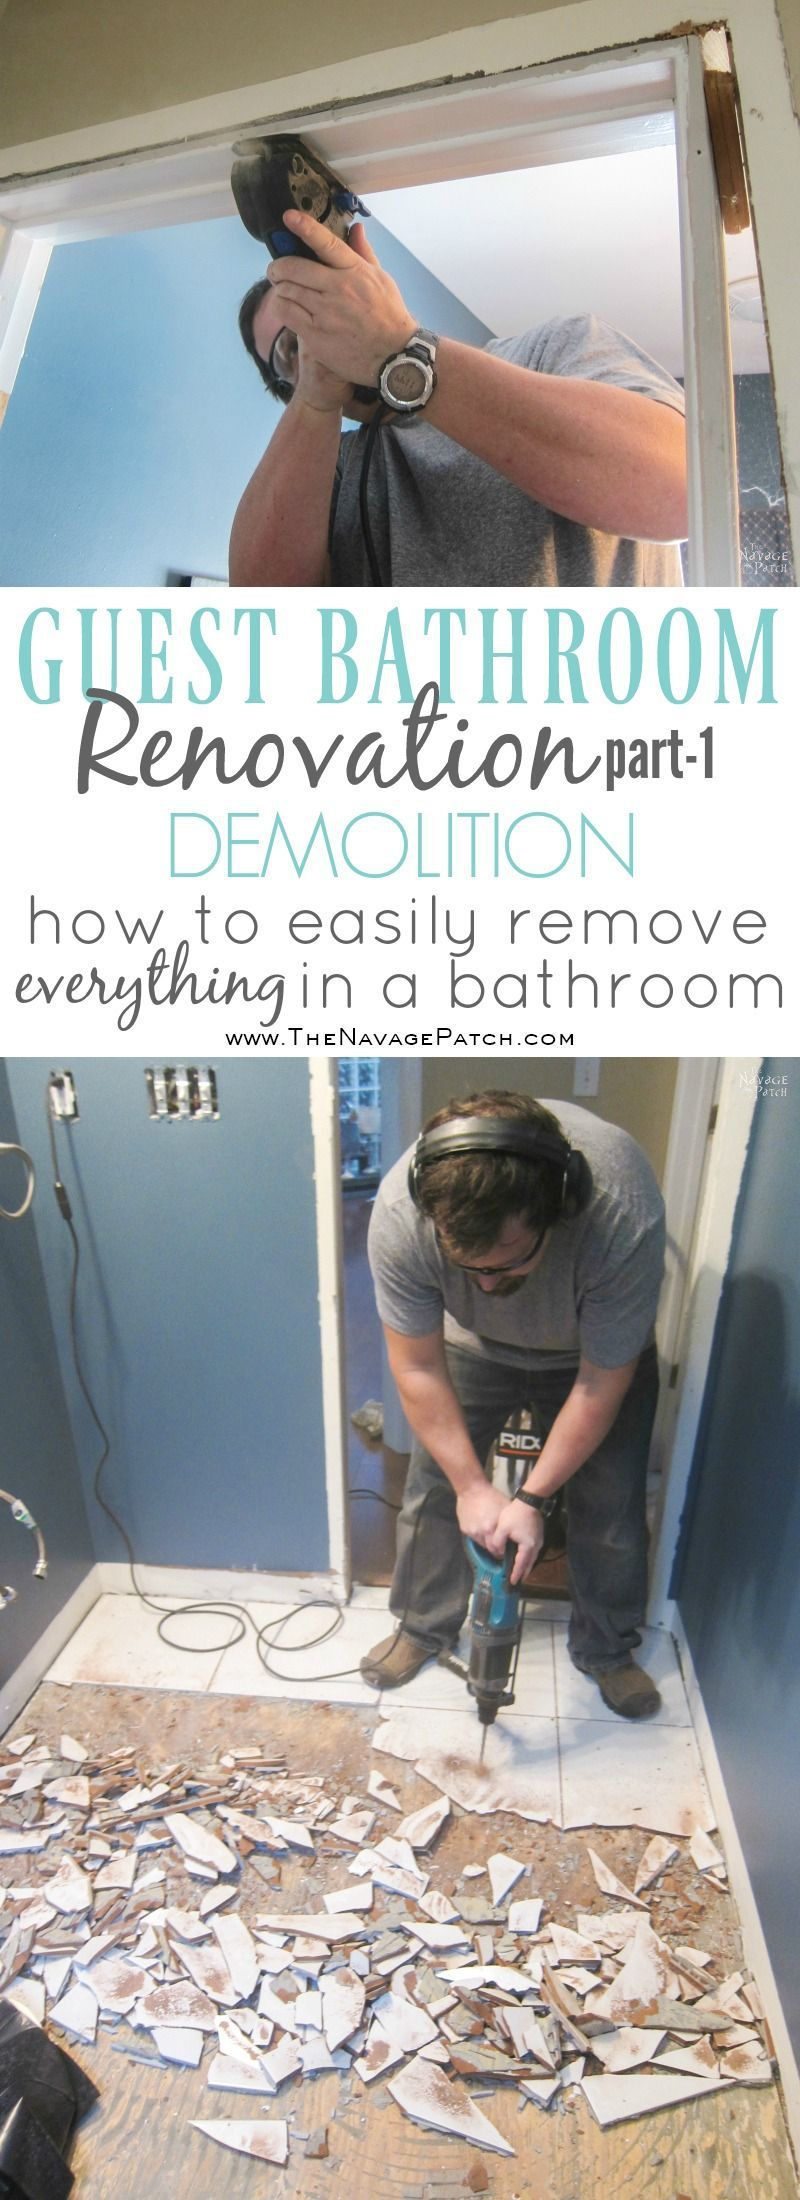 Guest bathroom renovation how to remove a baseboard how to remove guest bathroom renovation how to remove a baseboard how to remove floor tiles the easy way of removing tile flooring how to remove flooring the easy dailygadgetfo Images